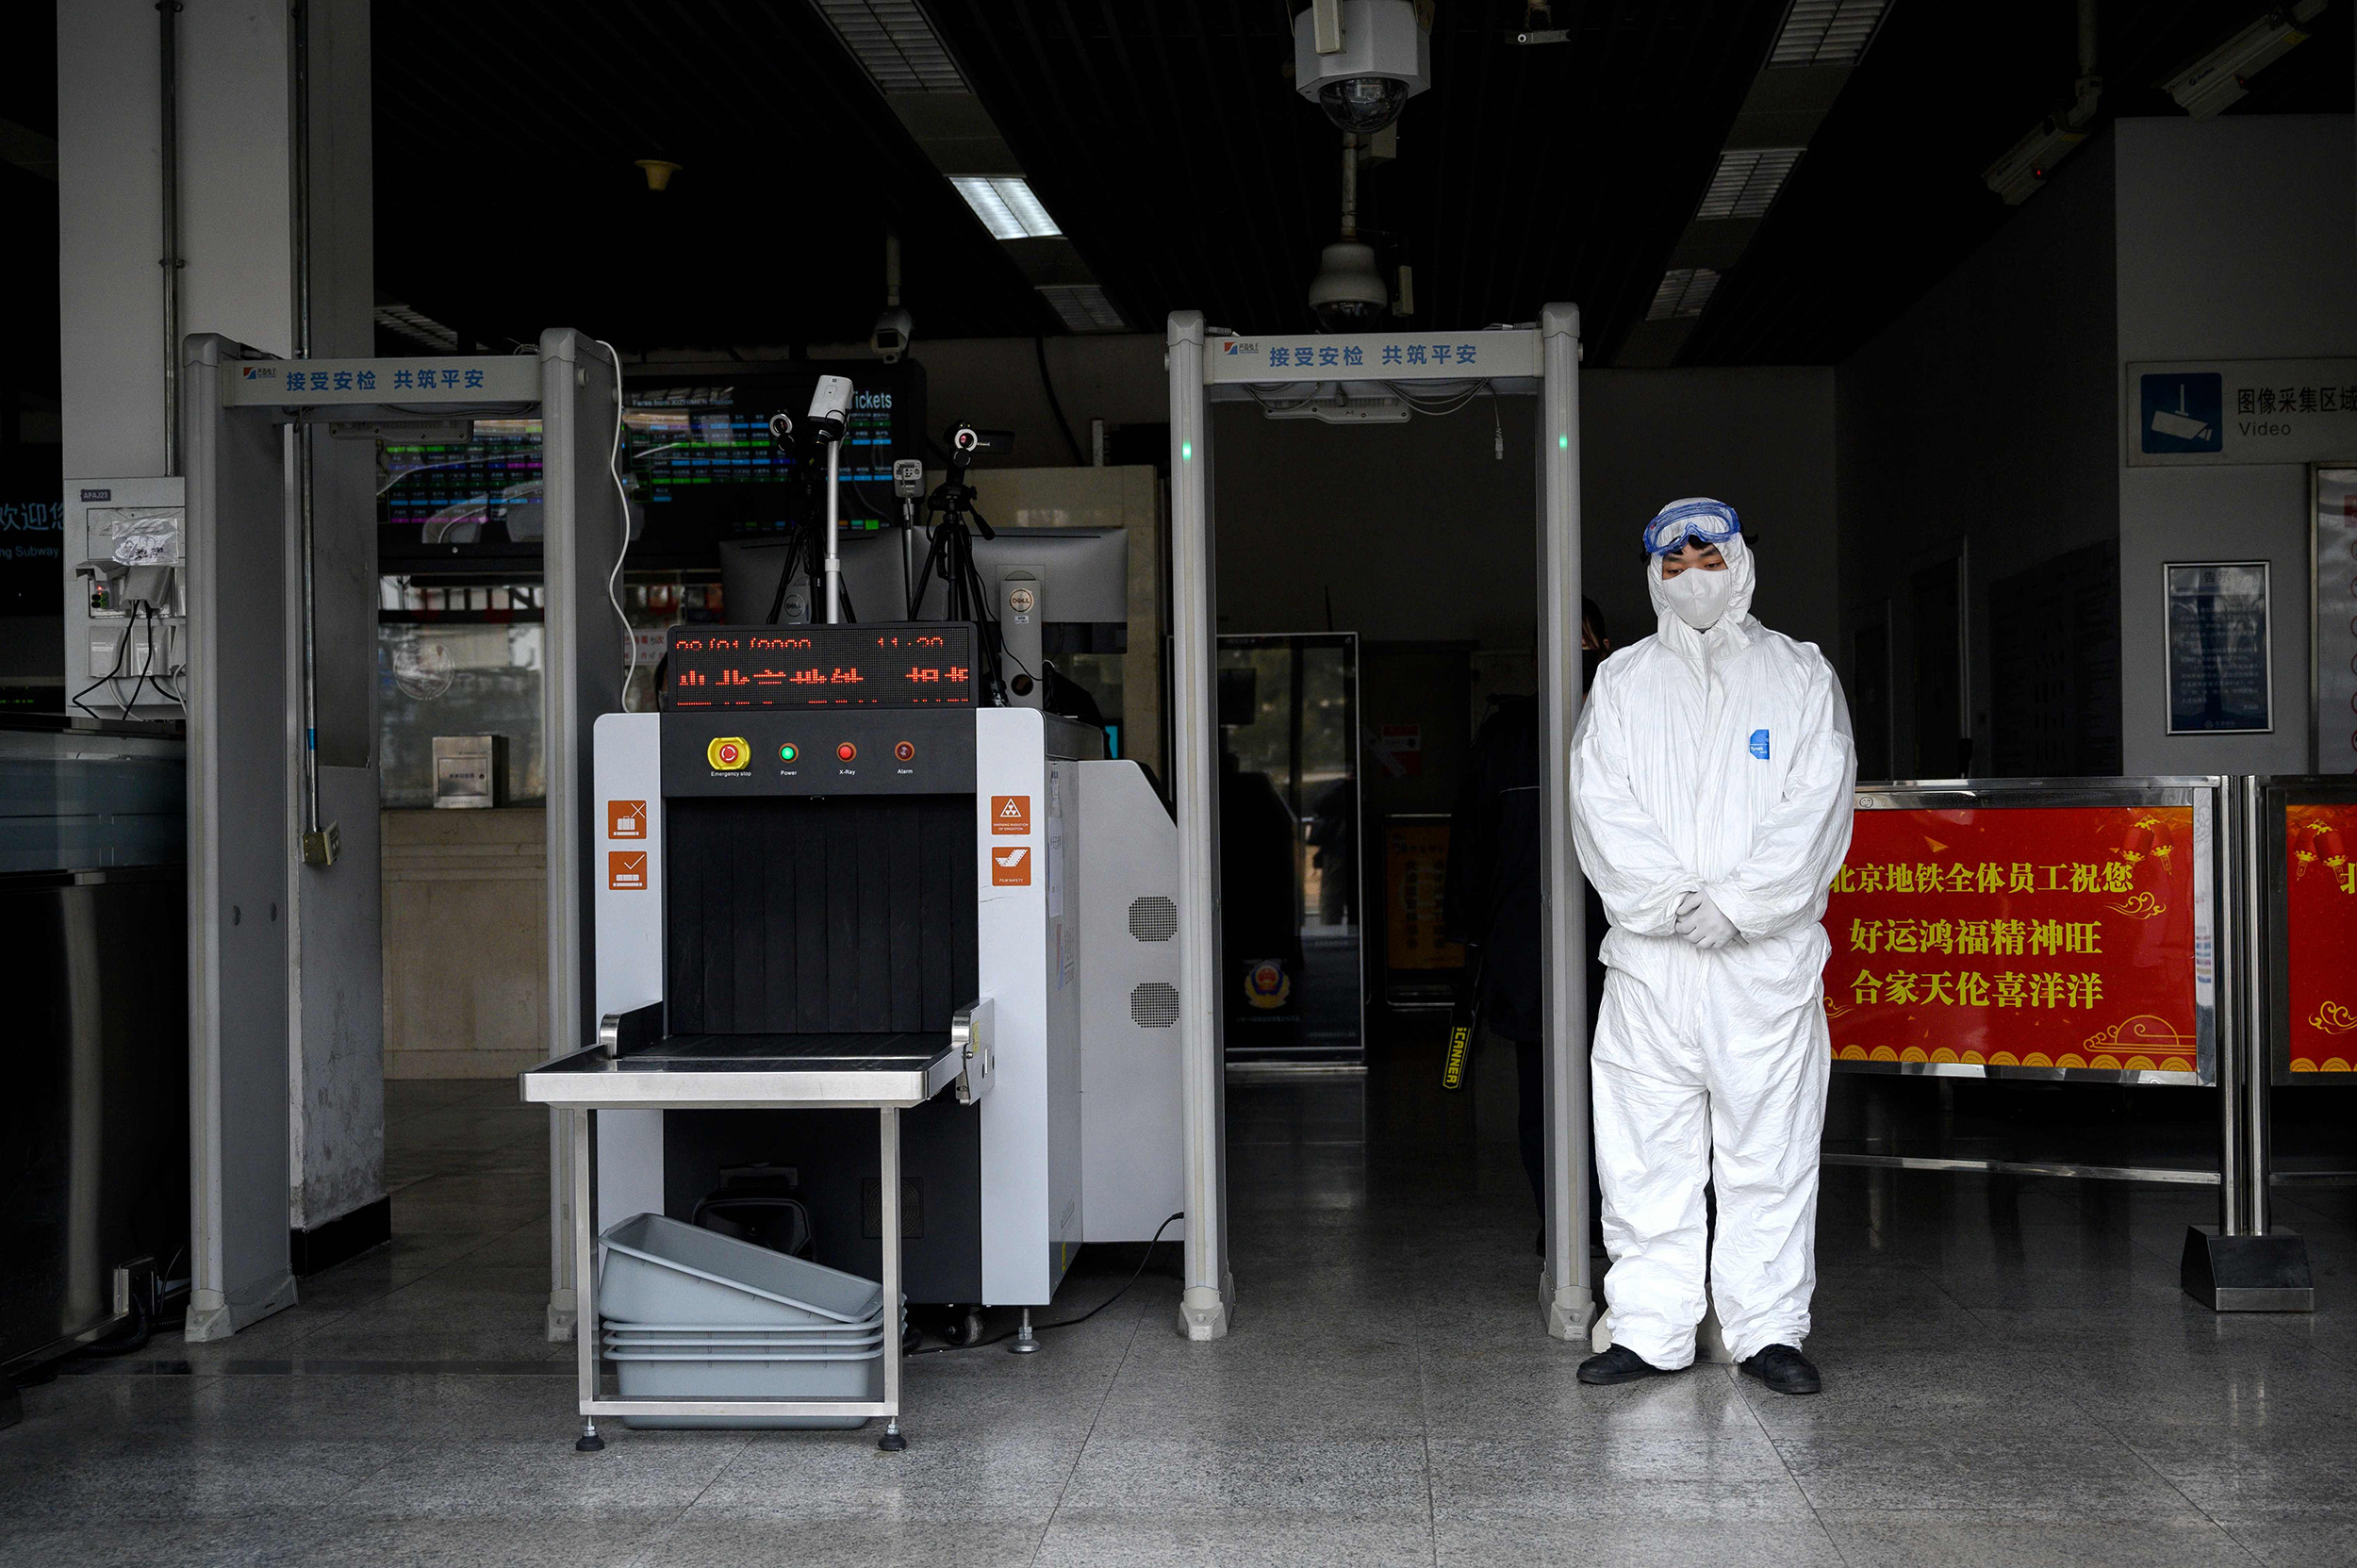 Image: Security personnel wearing protective clothing to help stop the spread of a deadly SARS-like virus at the entrance of subway station in Beijing